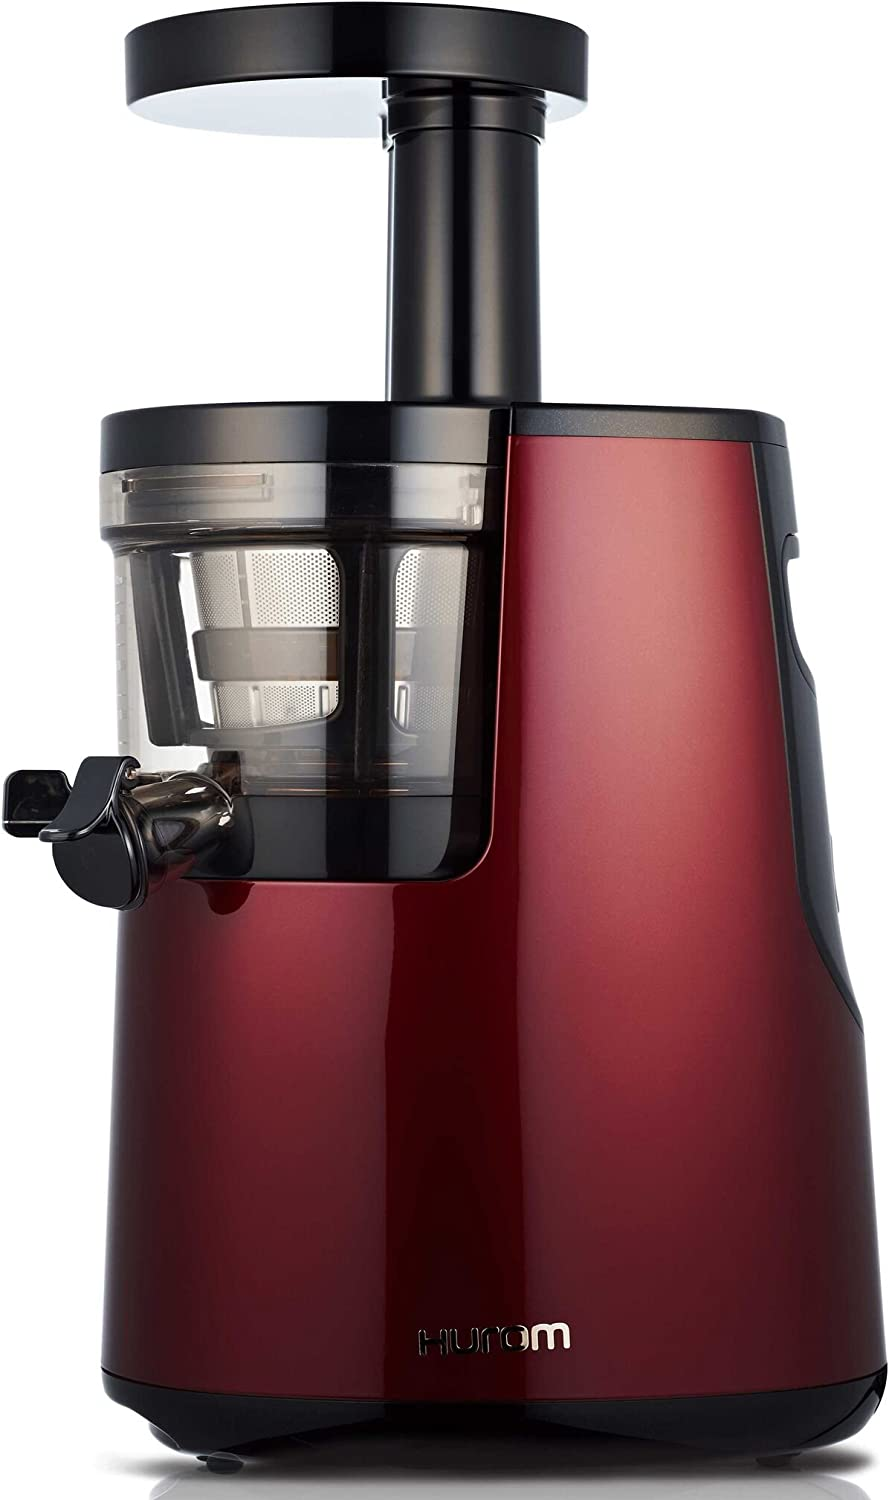 Best Hurom Juicer 2021 - Reviews & Buying Guide 6